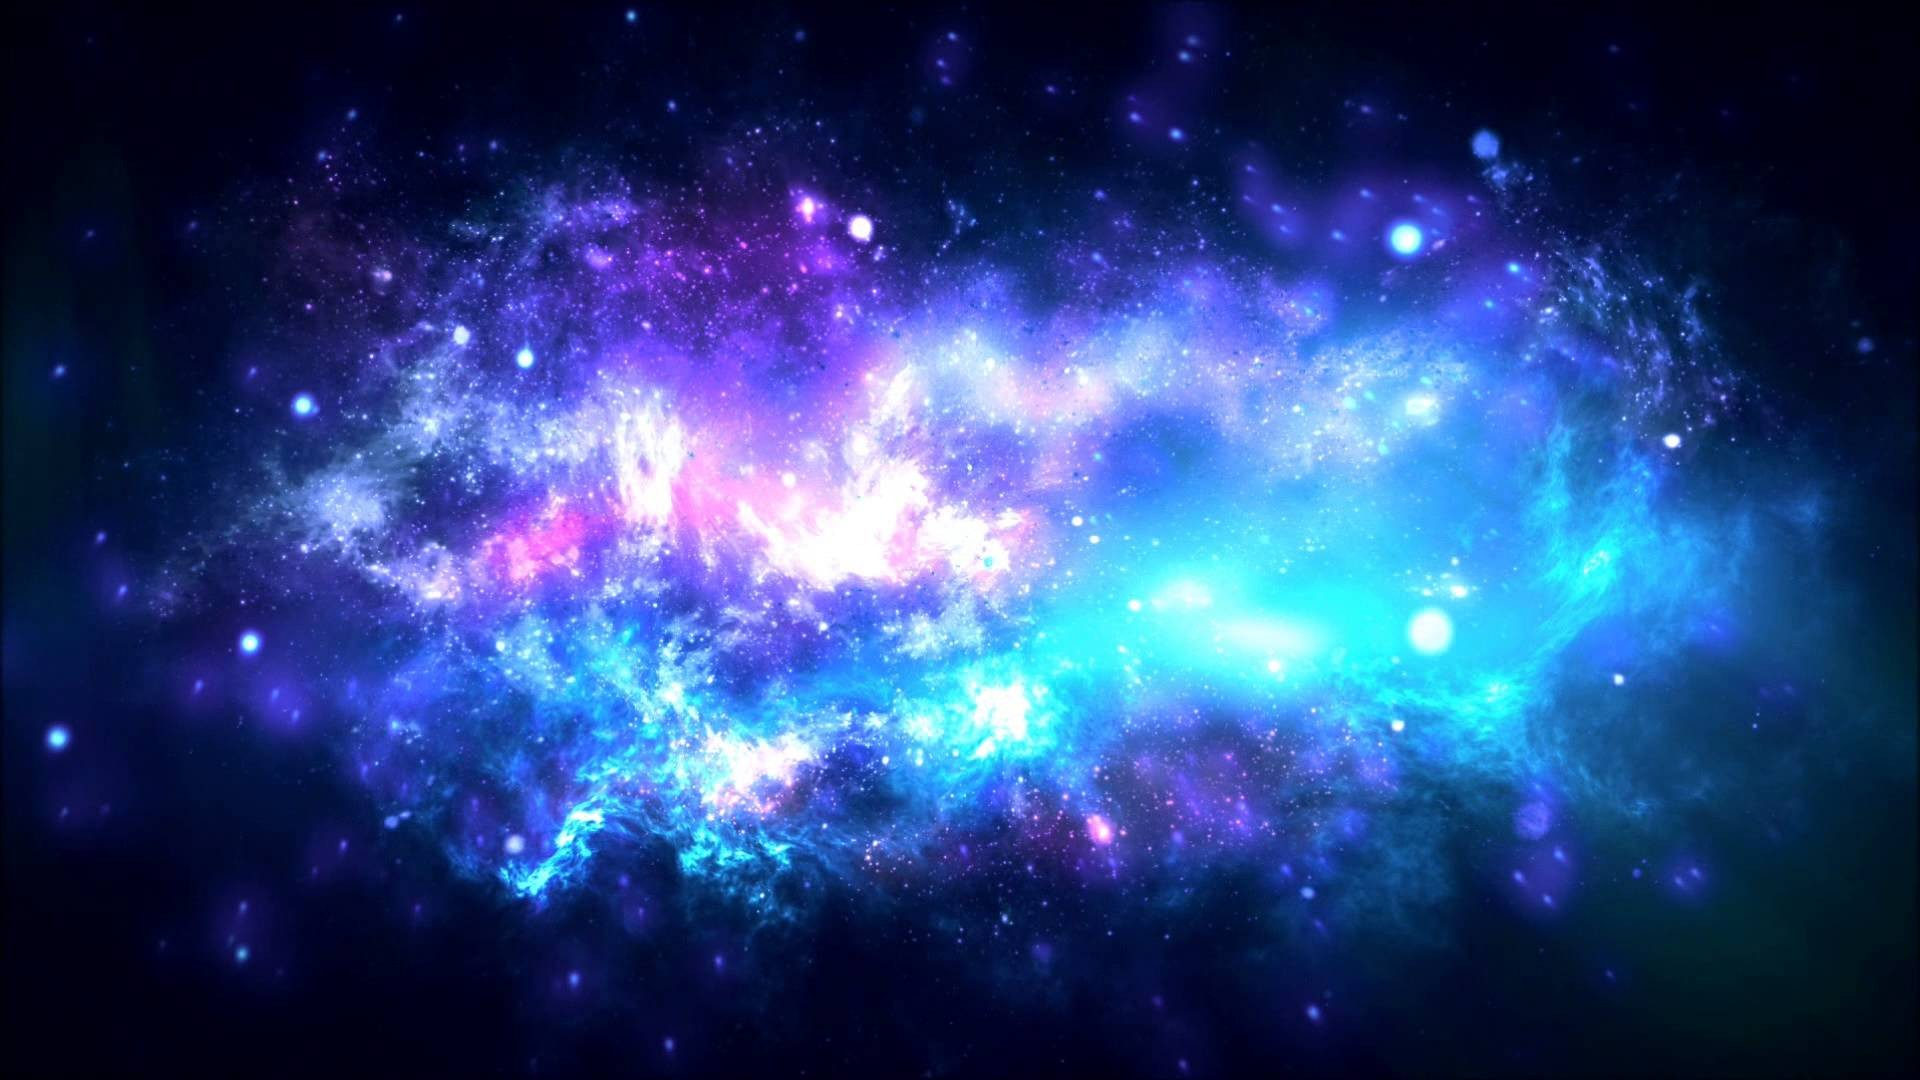 Galaxy background download free stunning backgrounds for desktop and mobile devices in any - Image wallpaper ...